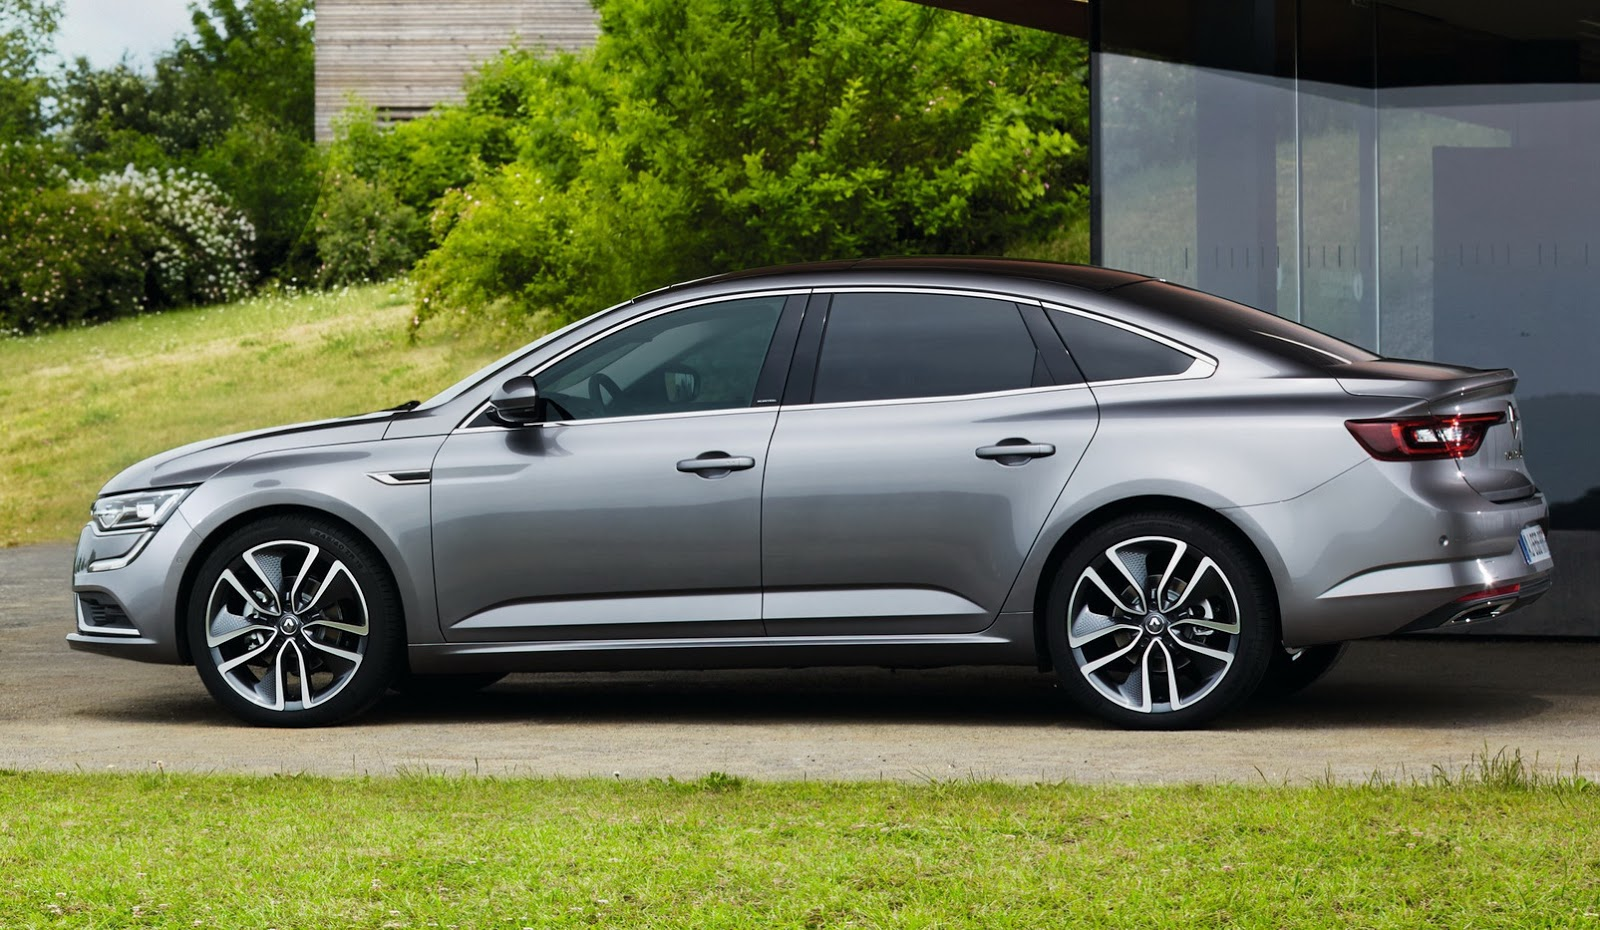 The New Renault Talisman Is Out And It S Unmistakably